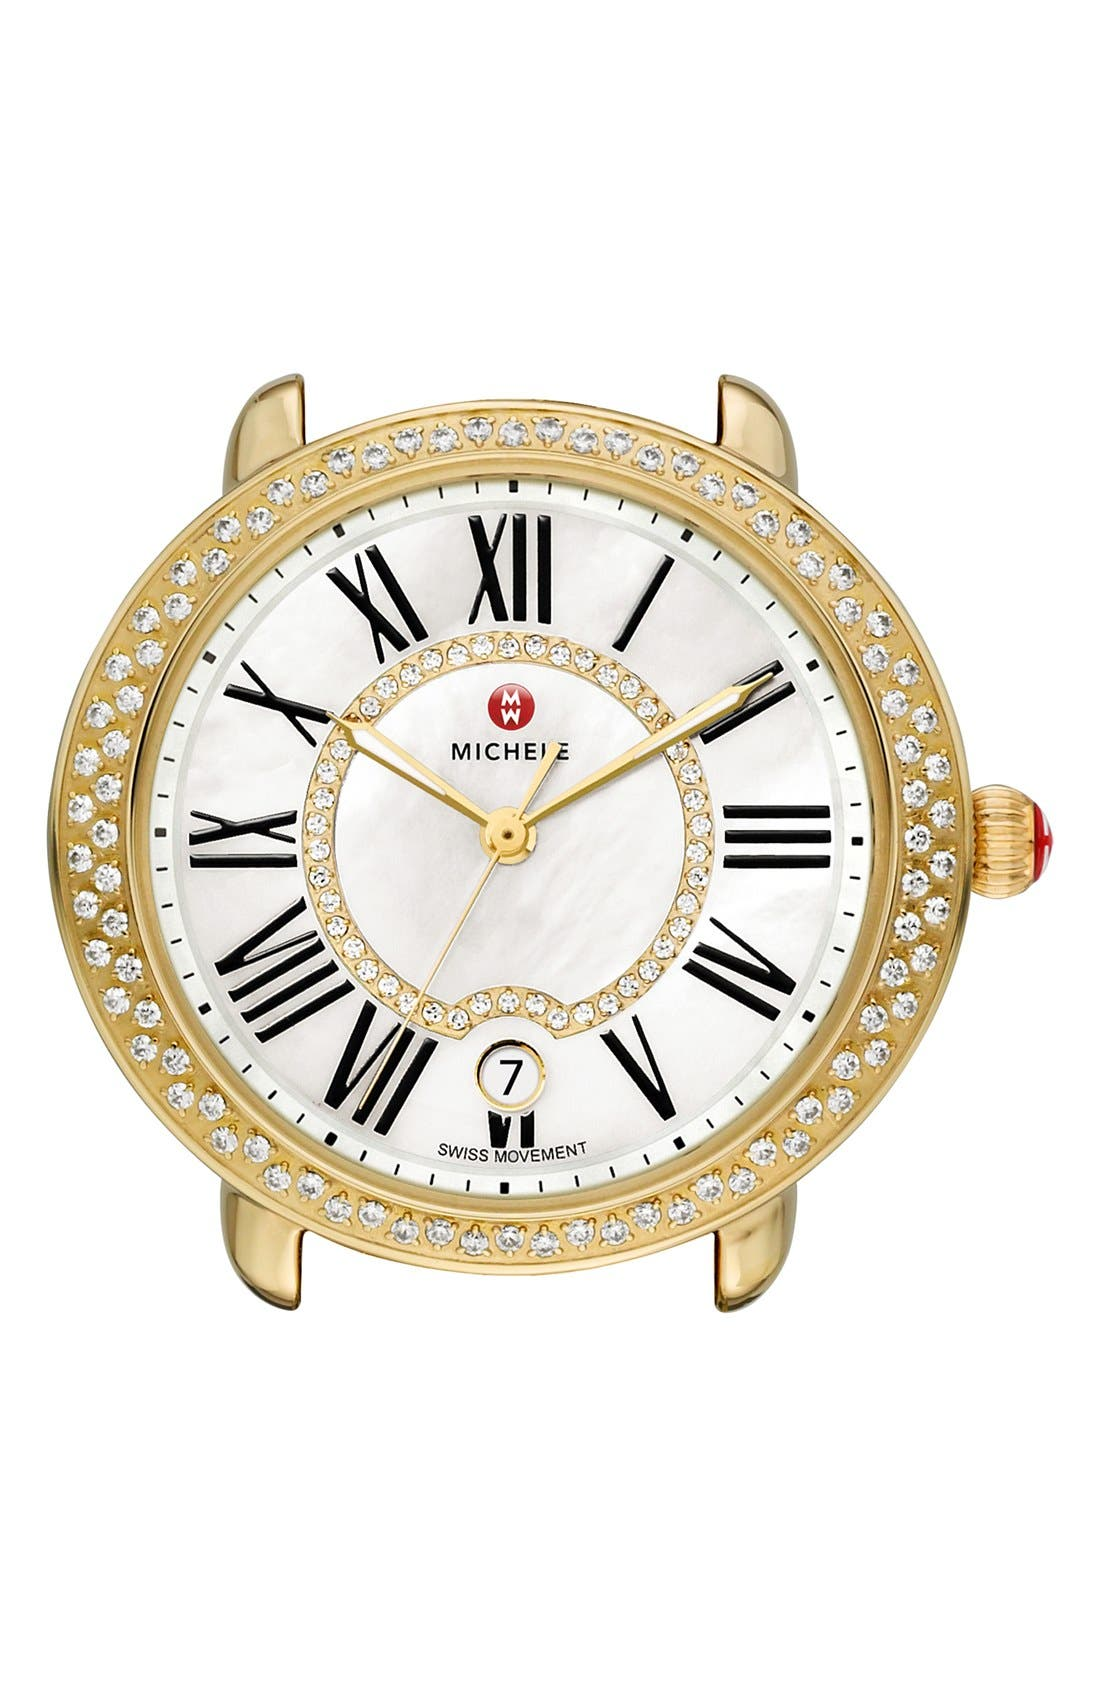 Serein 16 Diamond Gold Plated Watch Case, 34mm x 36mm,                             Alternate thumbnail 6, color,                             GOLD